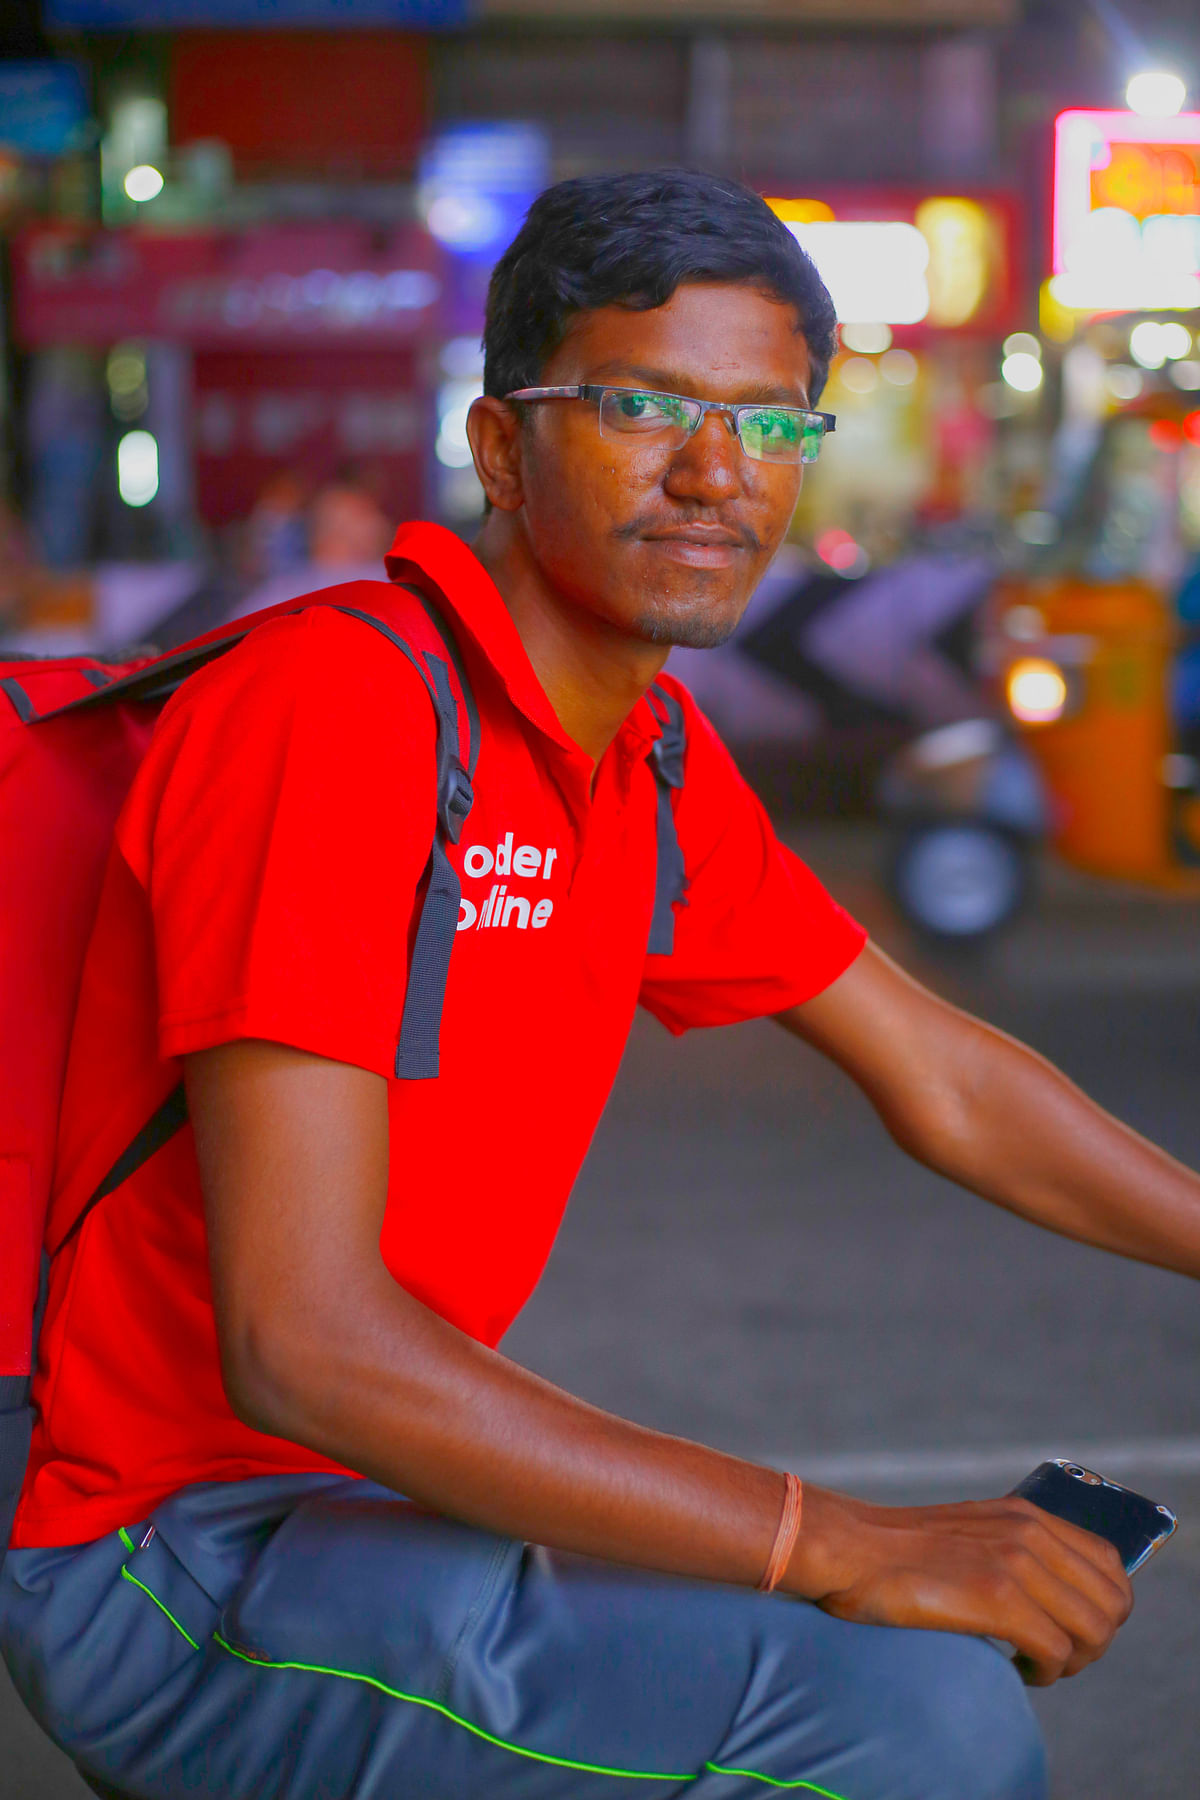 A college student delivering food by cycle for livelihood